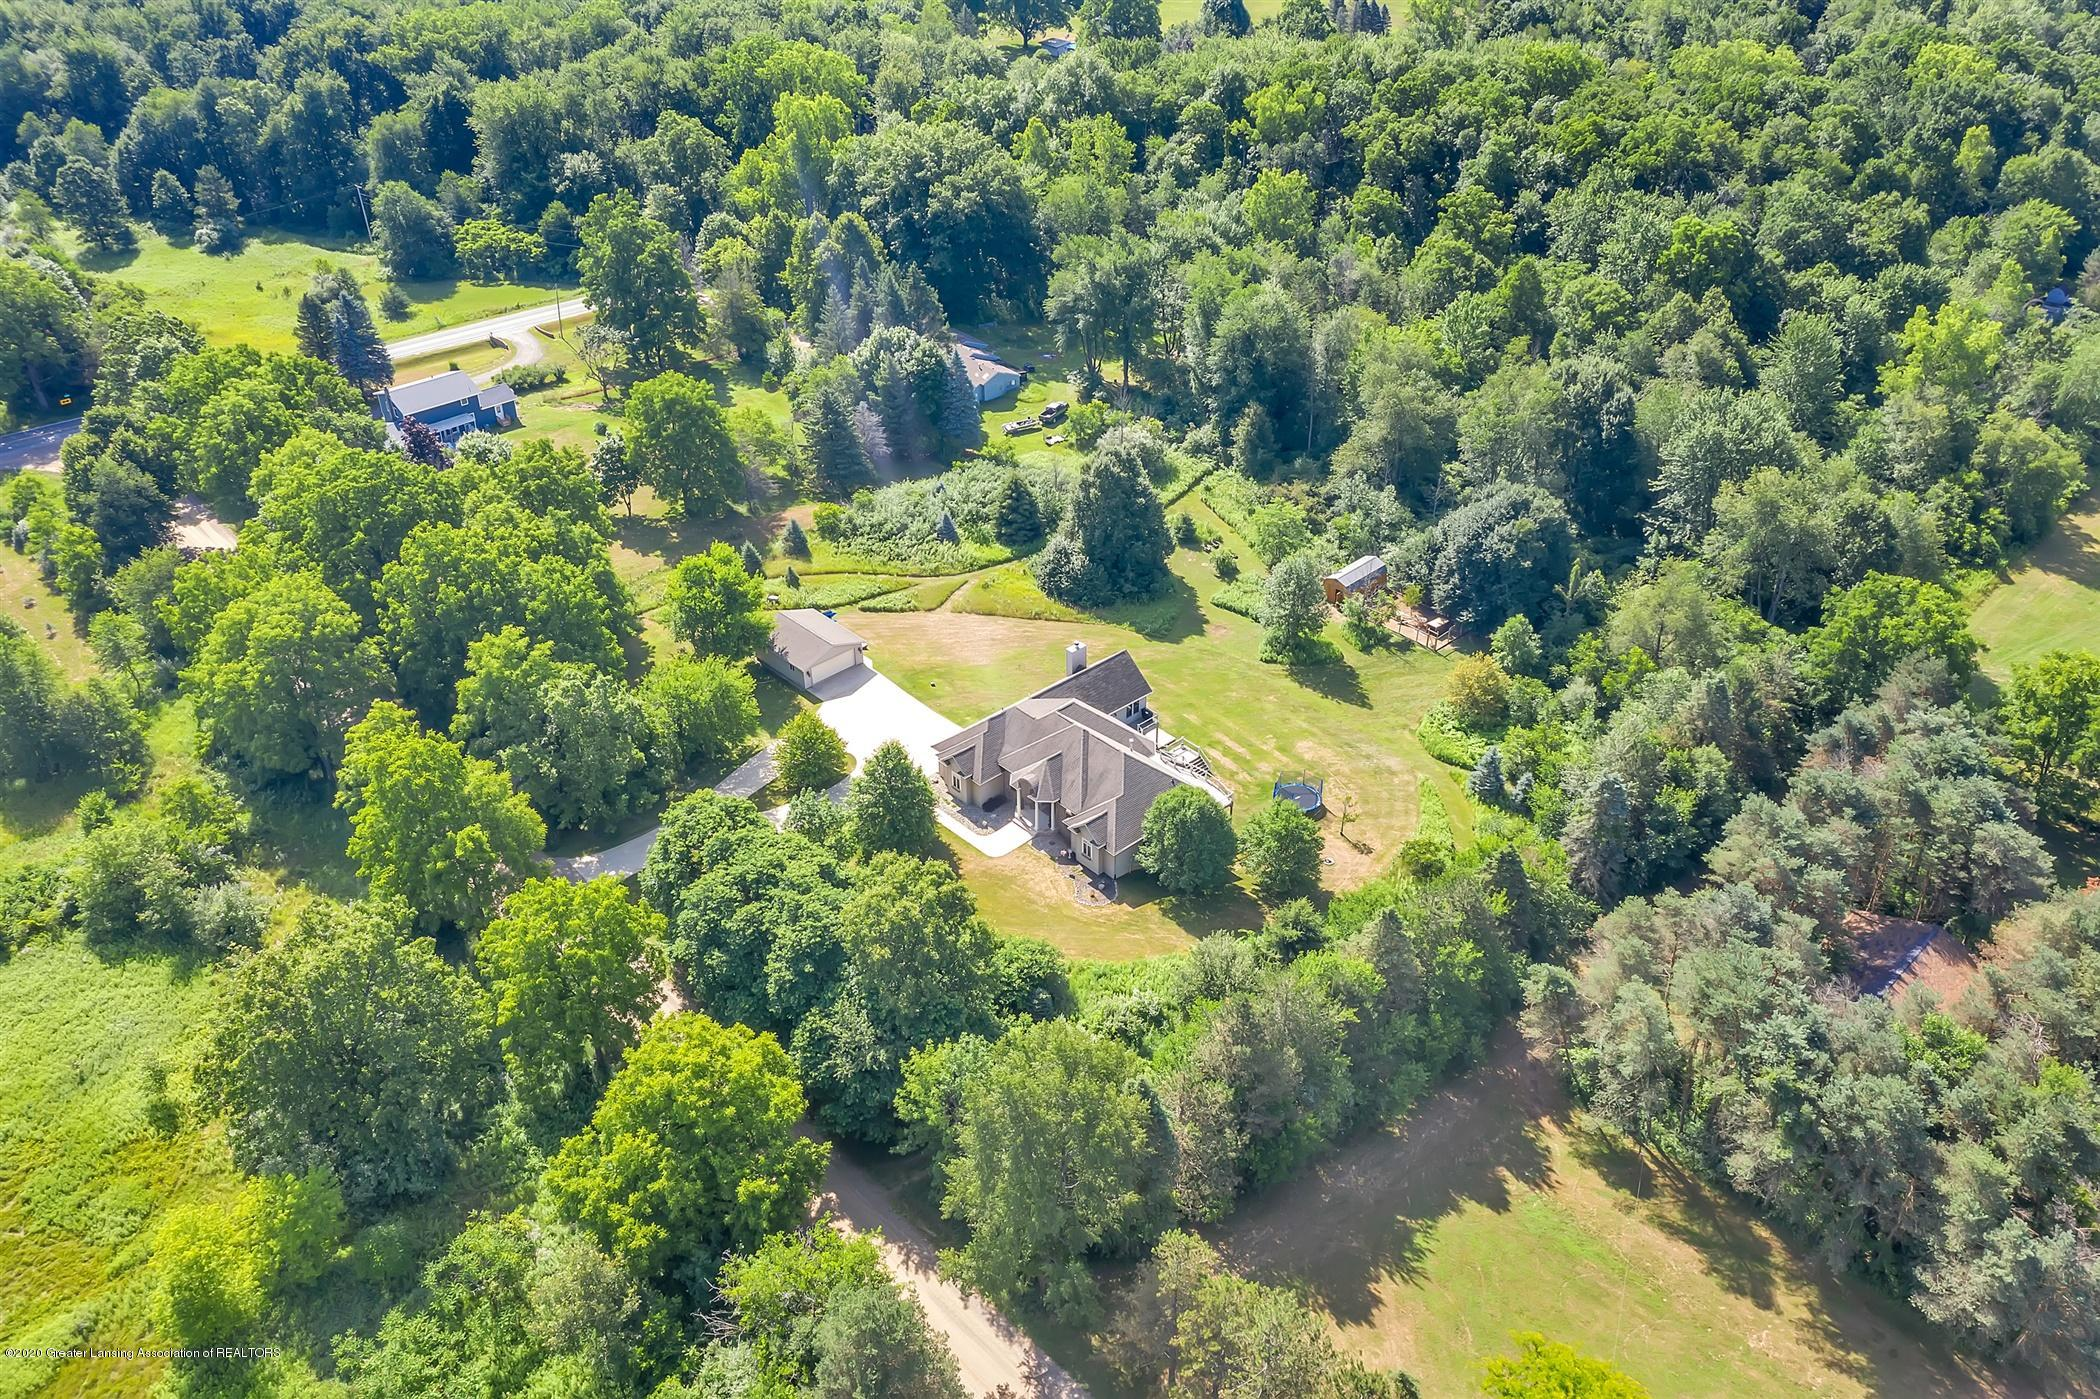 6255 Tyrrell Rd - Aerial View - 65